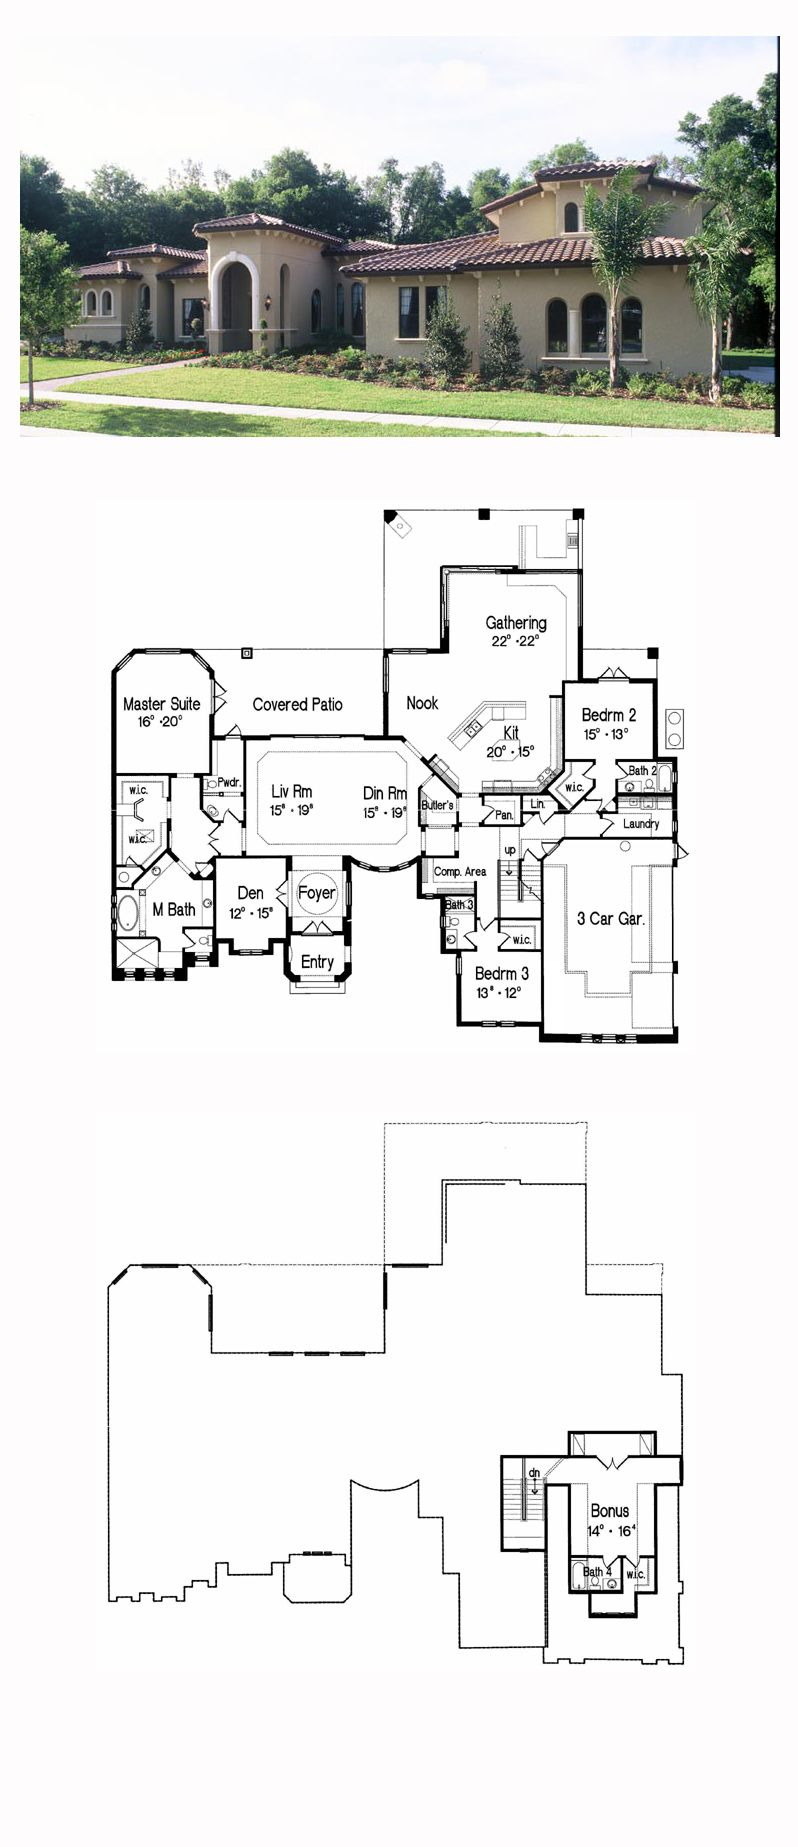 Mediterranean Style House Plan 64710 With 3 Bed 5 Bath 3 Car Garage Mediterranean Style House Plans Mediterranean Homes House Plans